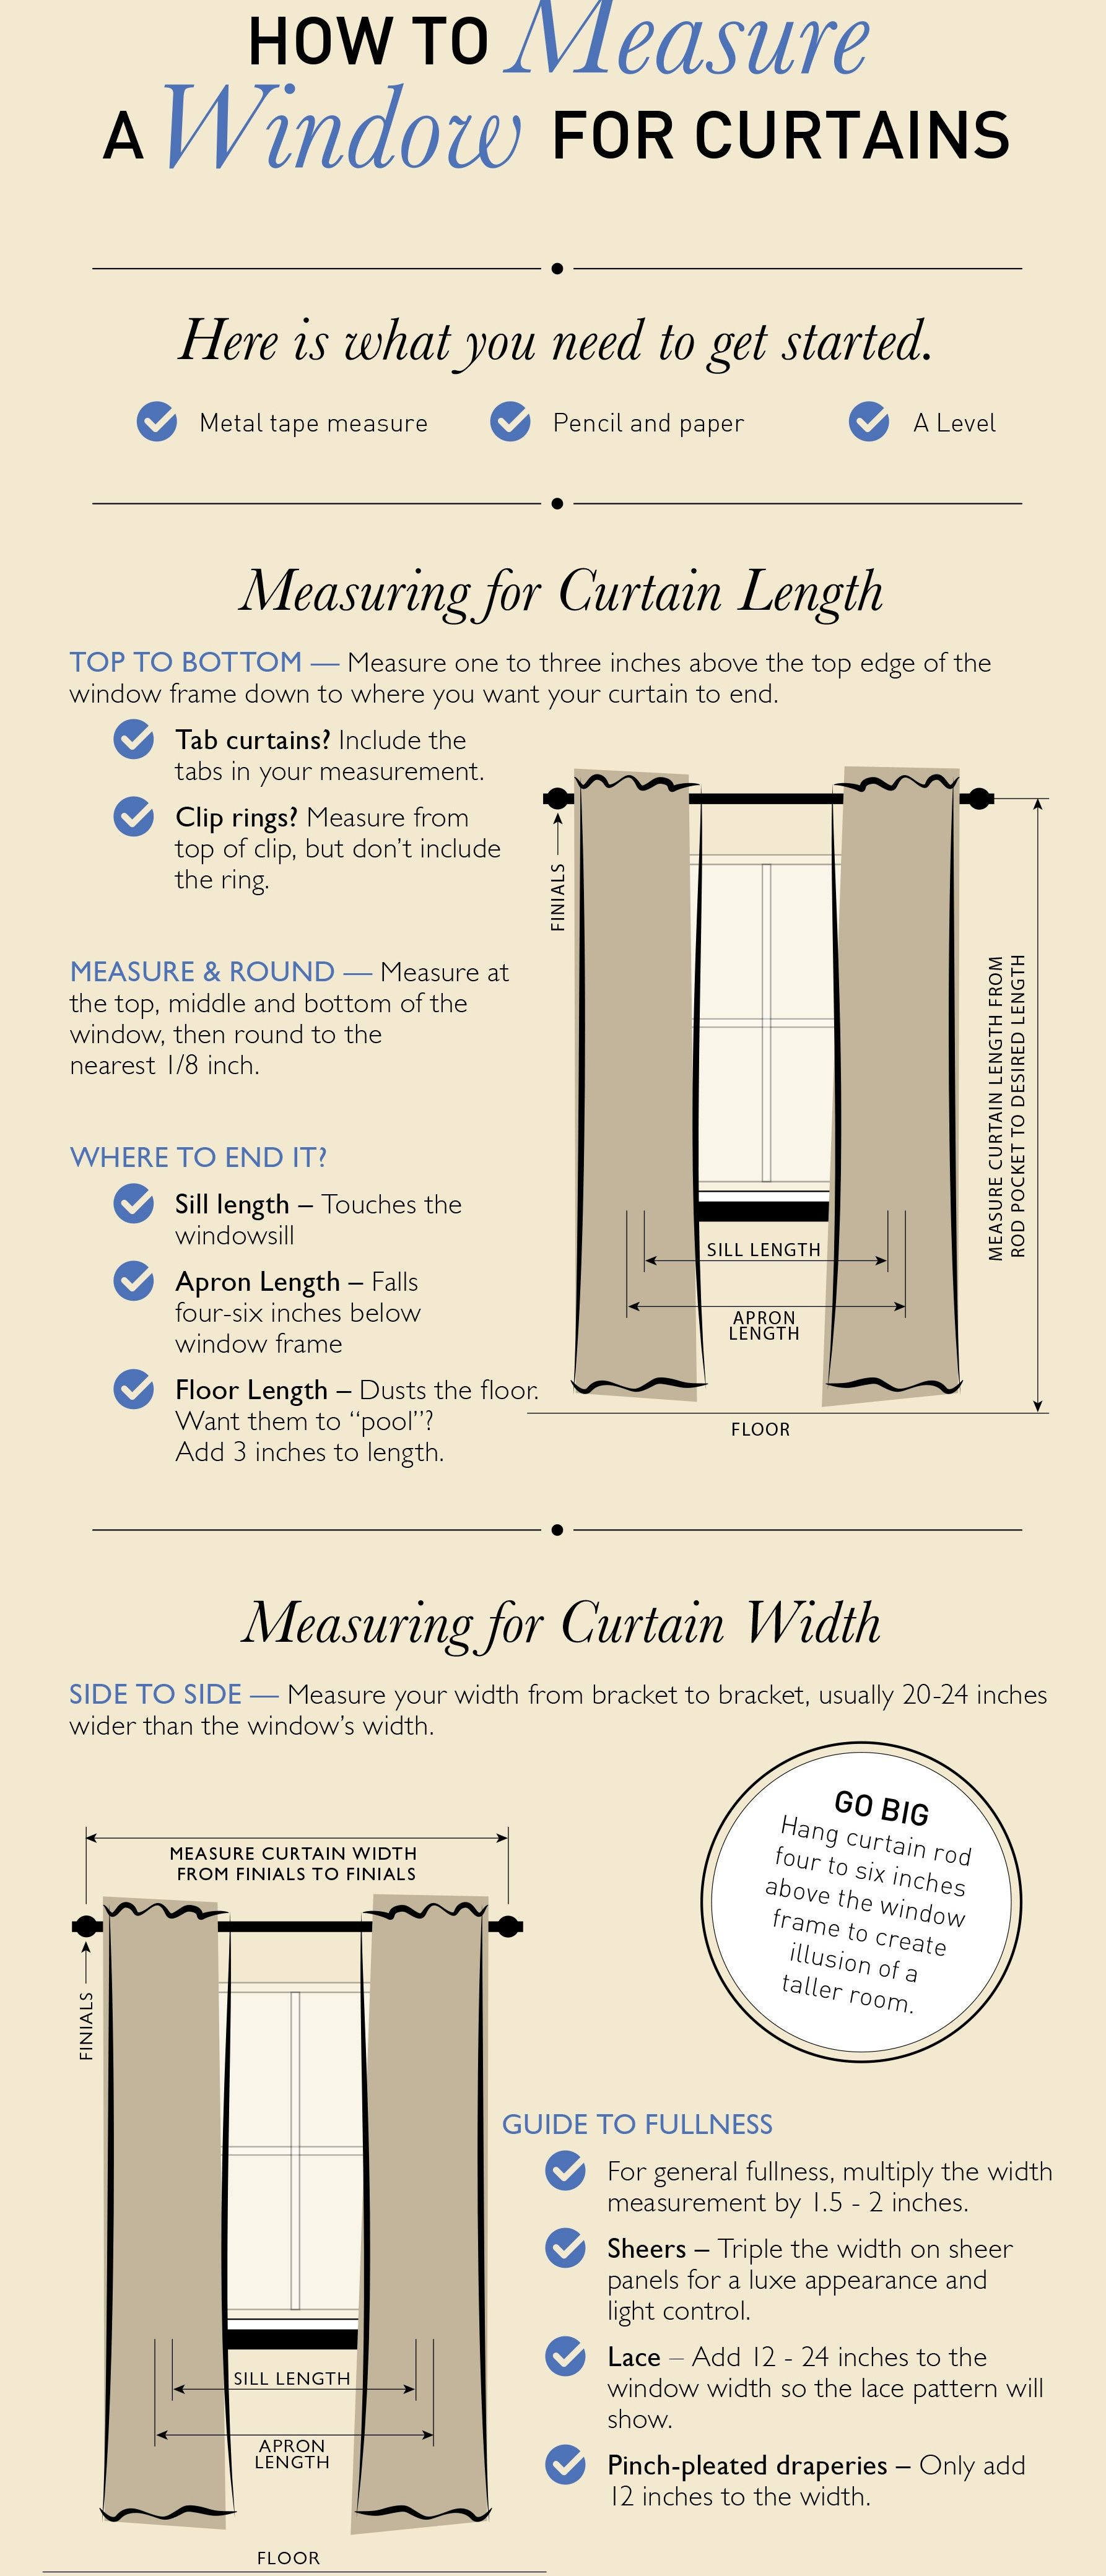 How to measure a window for curtains with images diy